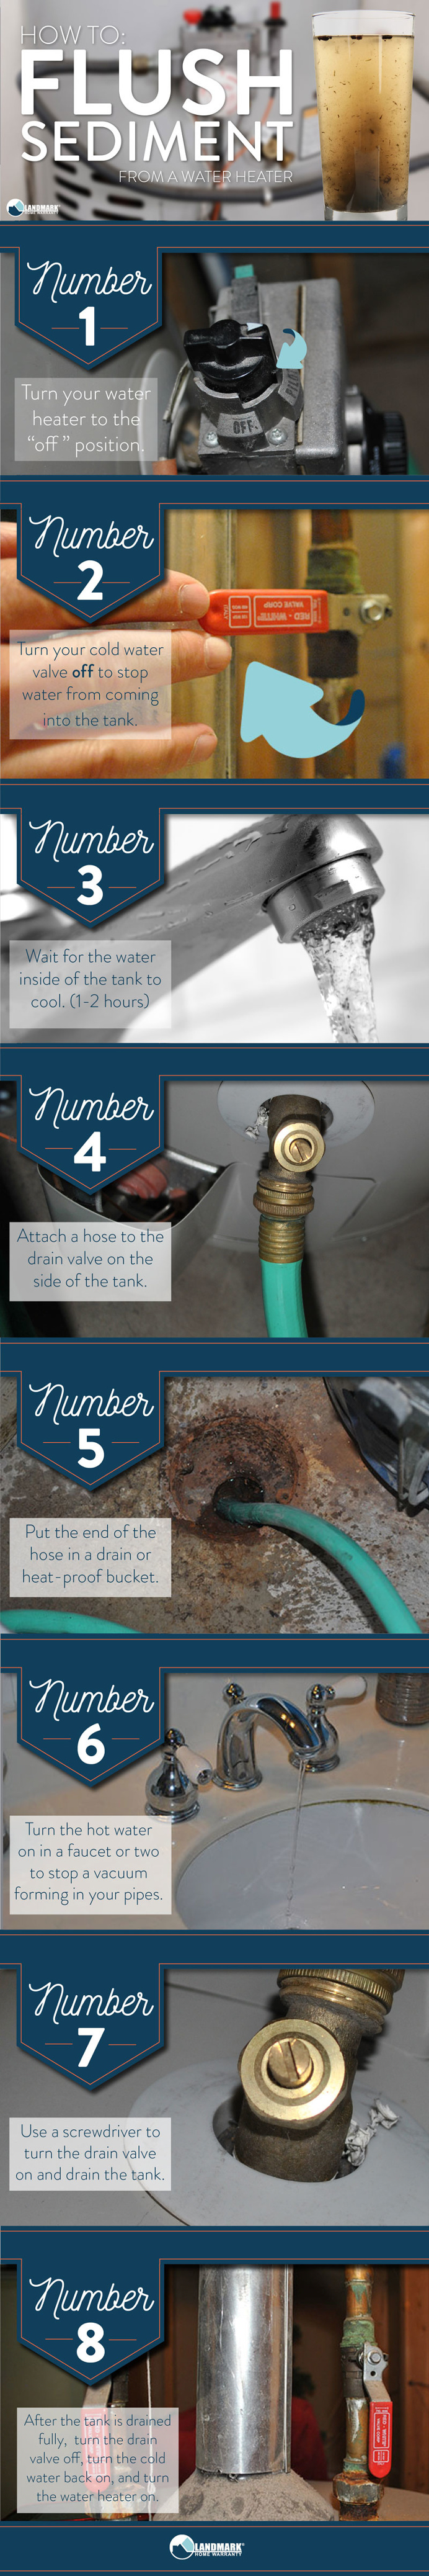 How to flush your water heater tank from sediment full step by step instruction sheet.